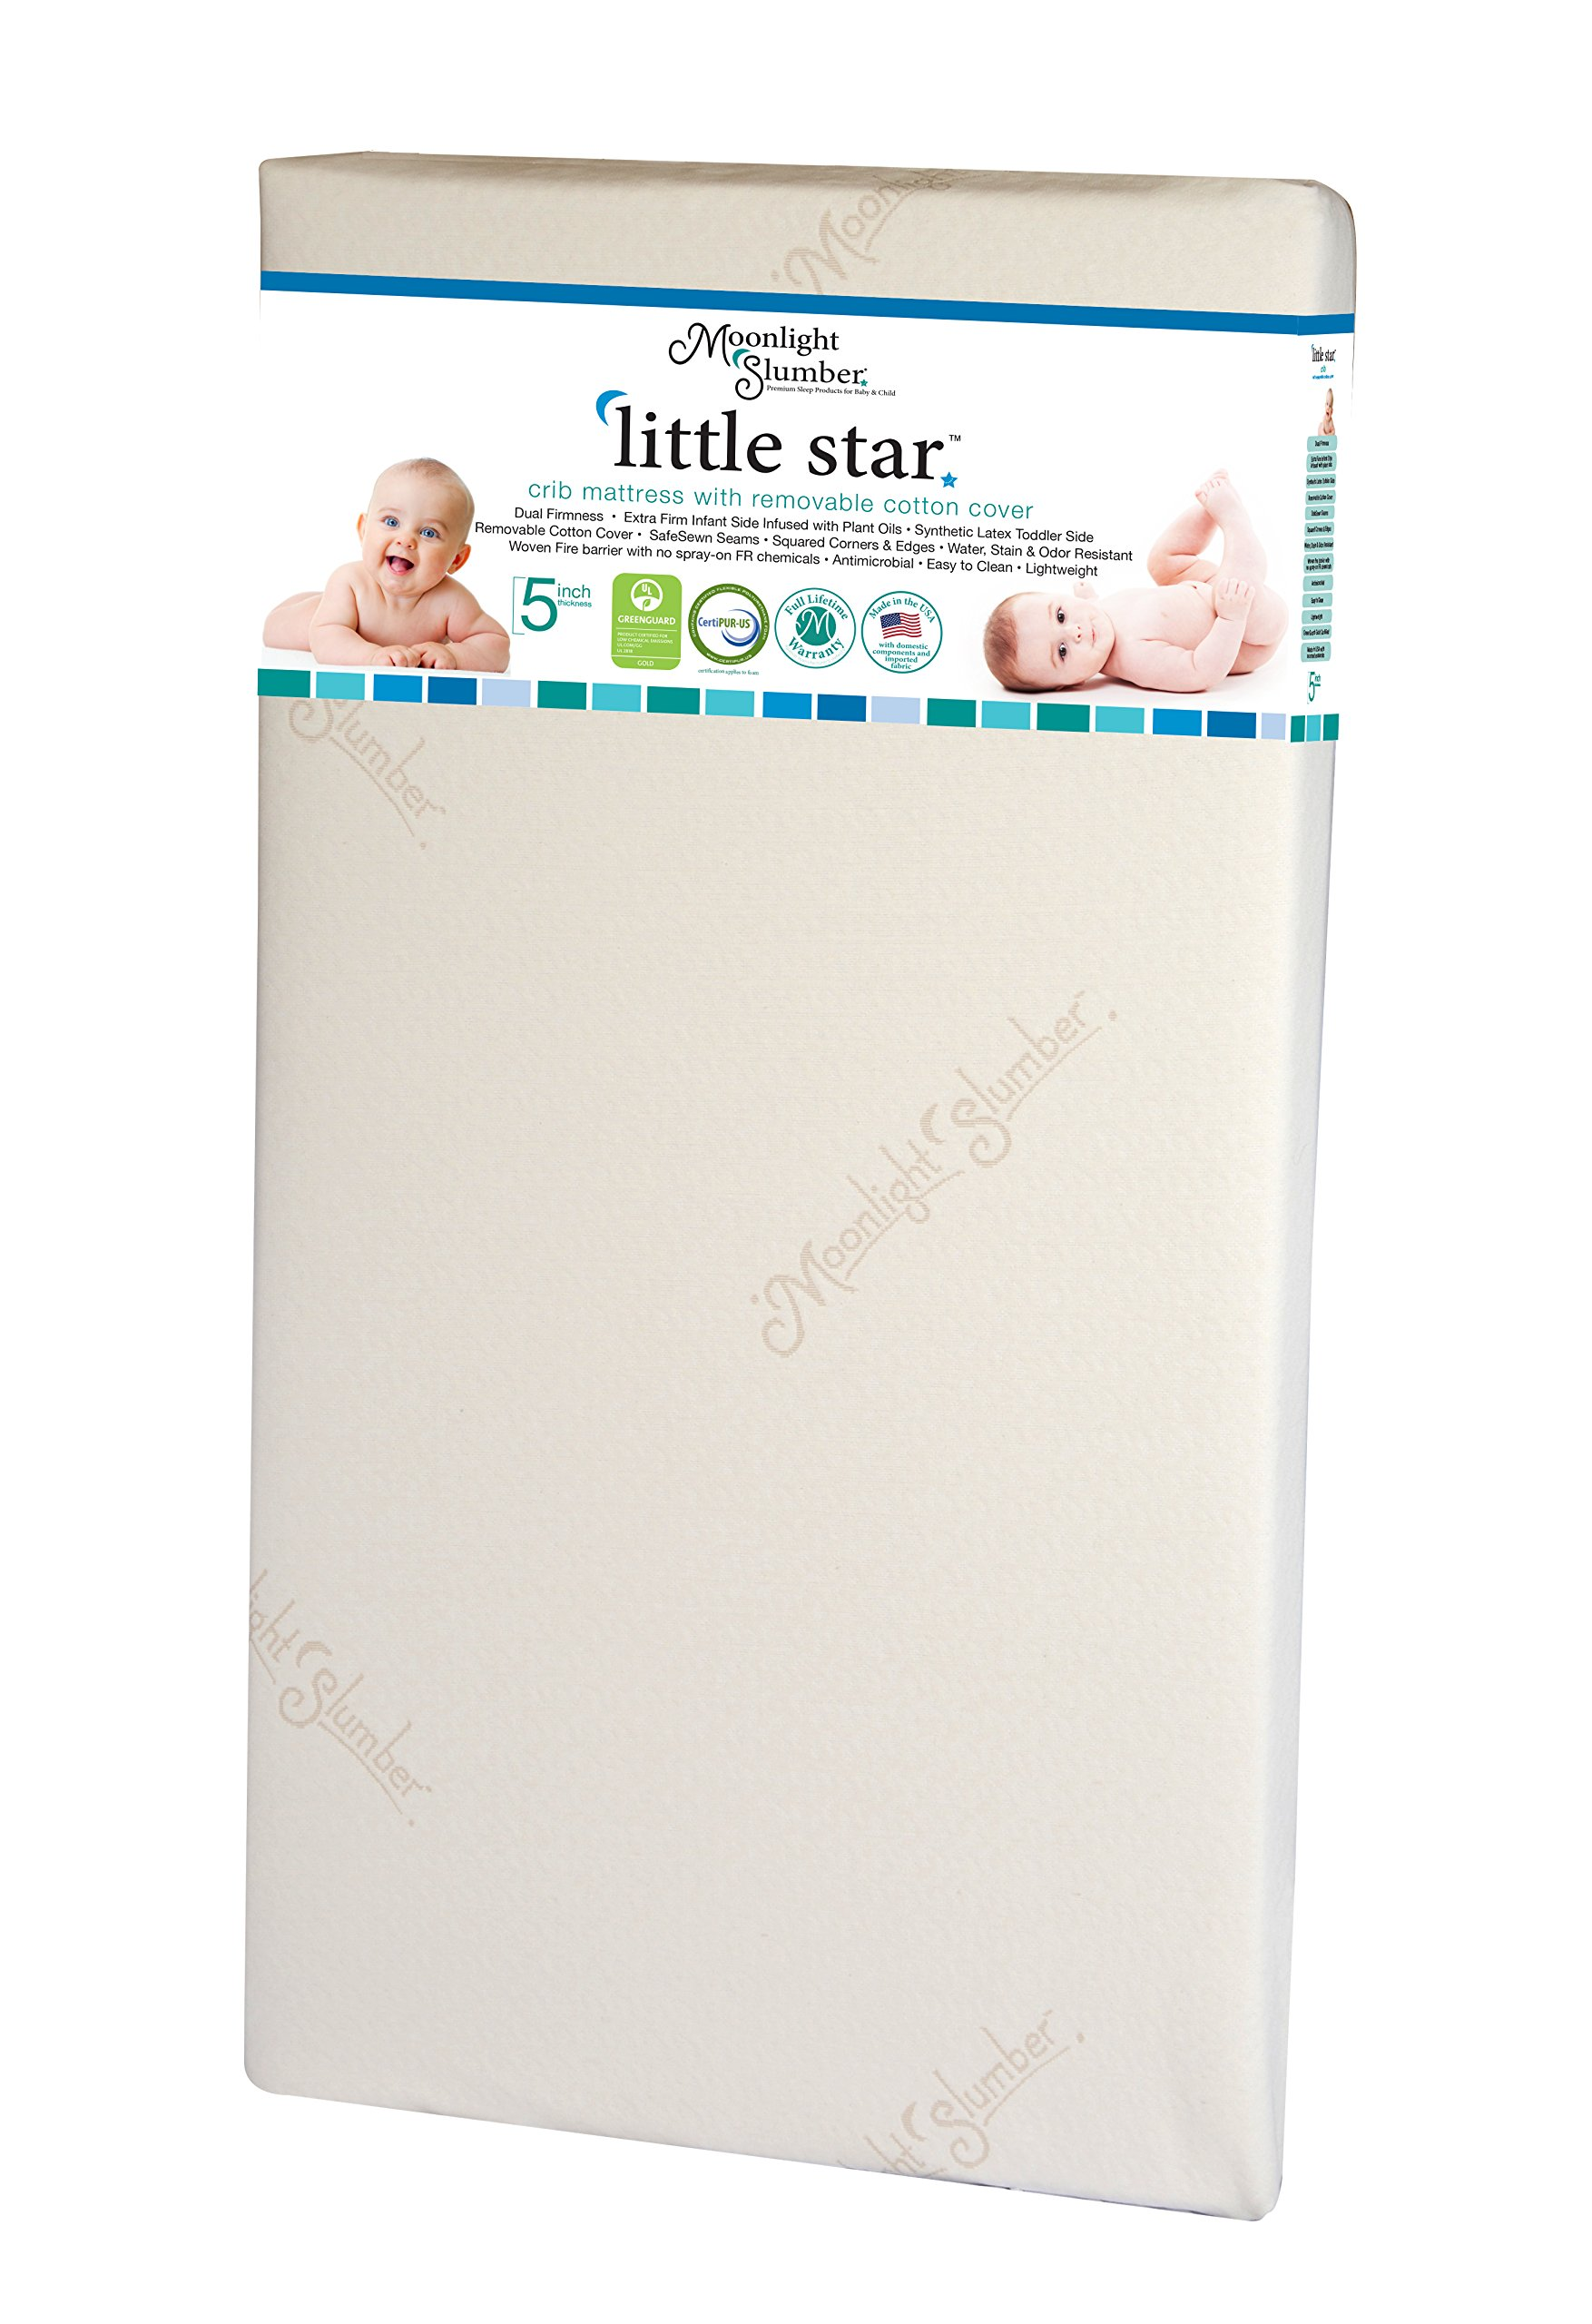 Moonlight Slumber Little Star Dual Firmness Crib Mattress - Water Resistant, Hypoallergenic, and Antimicrobial Lightweight Infant / Toddler Crib Mattress with Removable Performance Cotton Cover by Moonlight Slumber